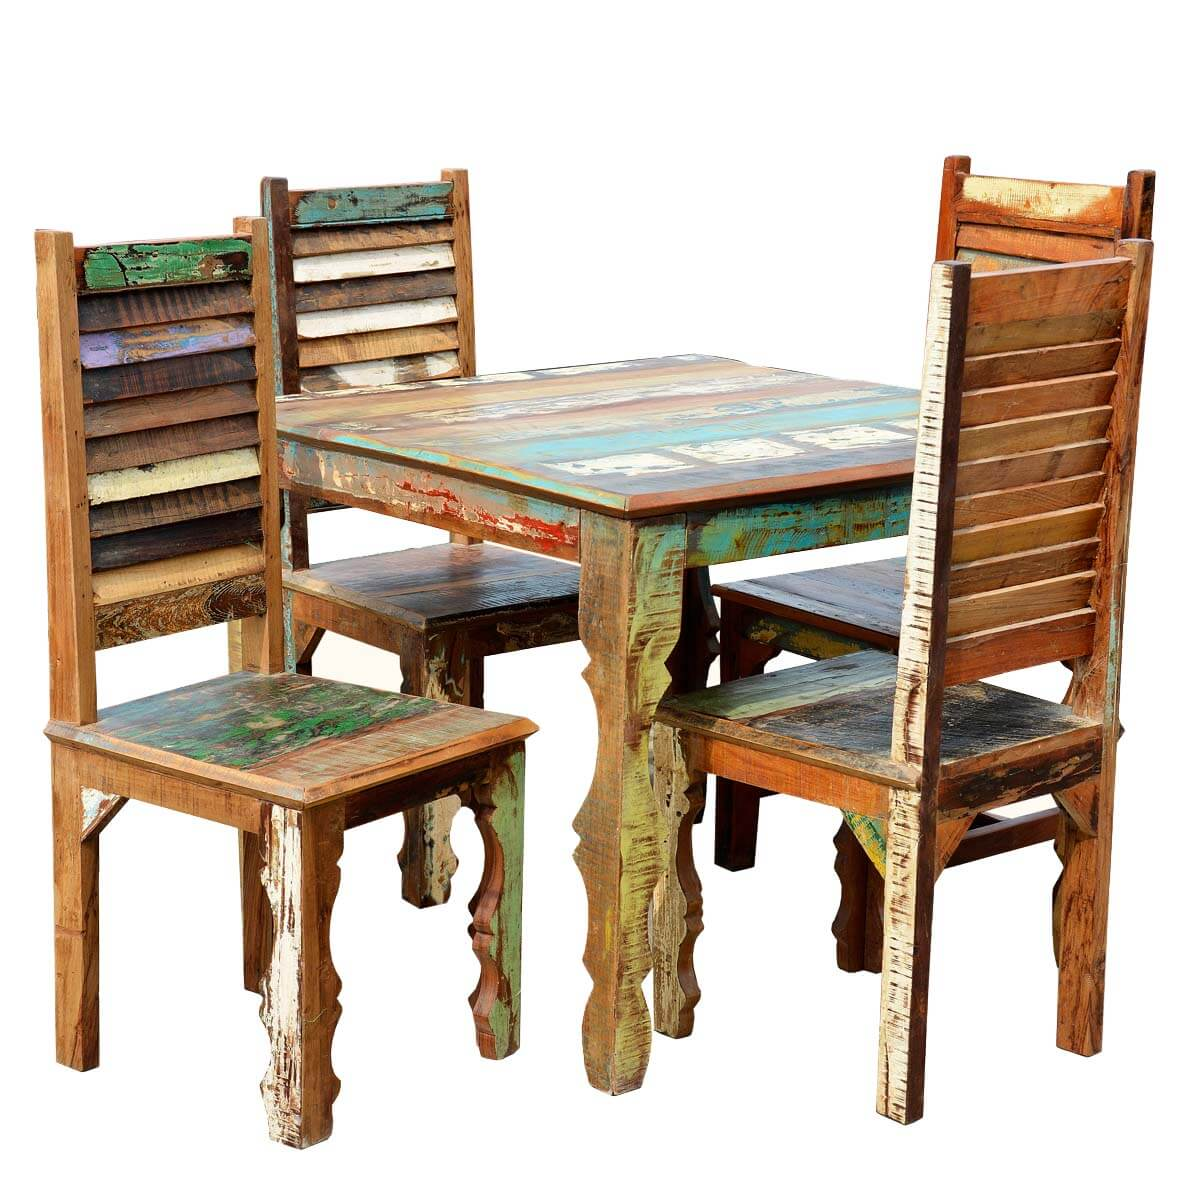 rustic reclaimed wood dining table w shutter back chairs for 4 people. Black Bedroom Furniture Sets. Home Design Ideas